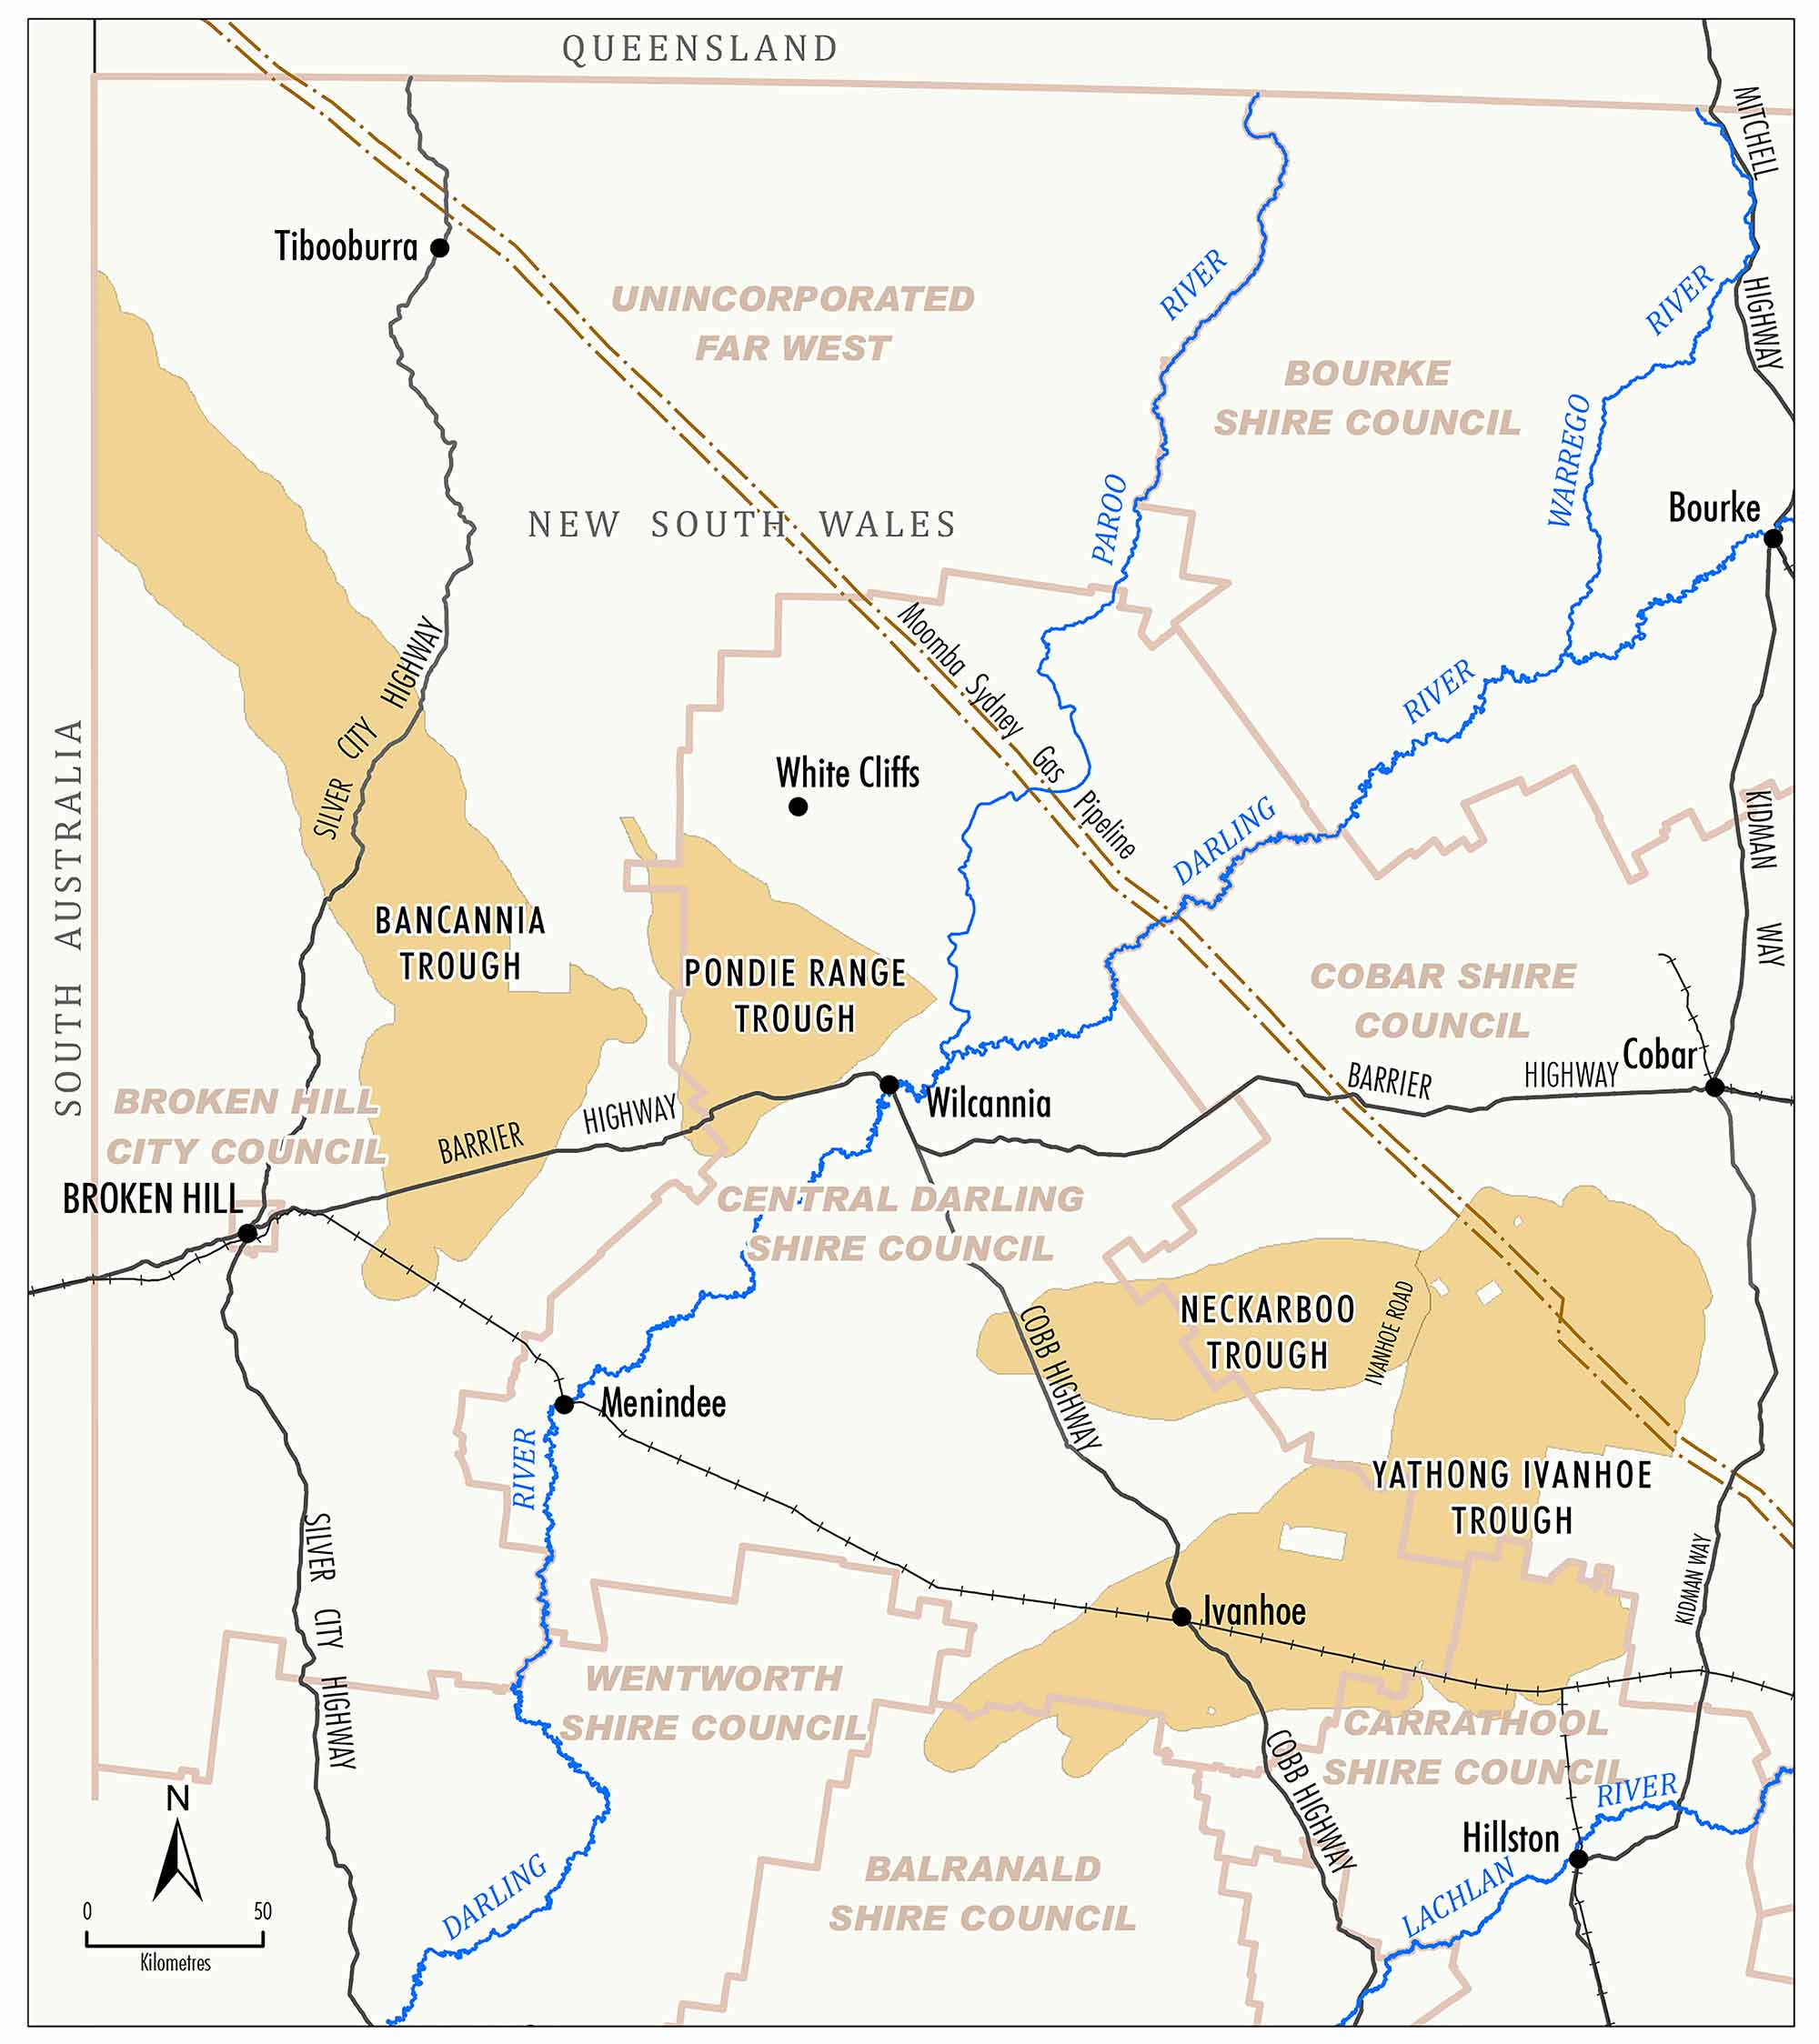 Butler dismayed at Government's plan to open up the far west to gas exploration Image